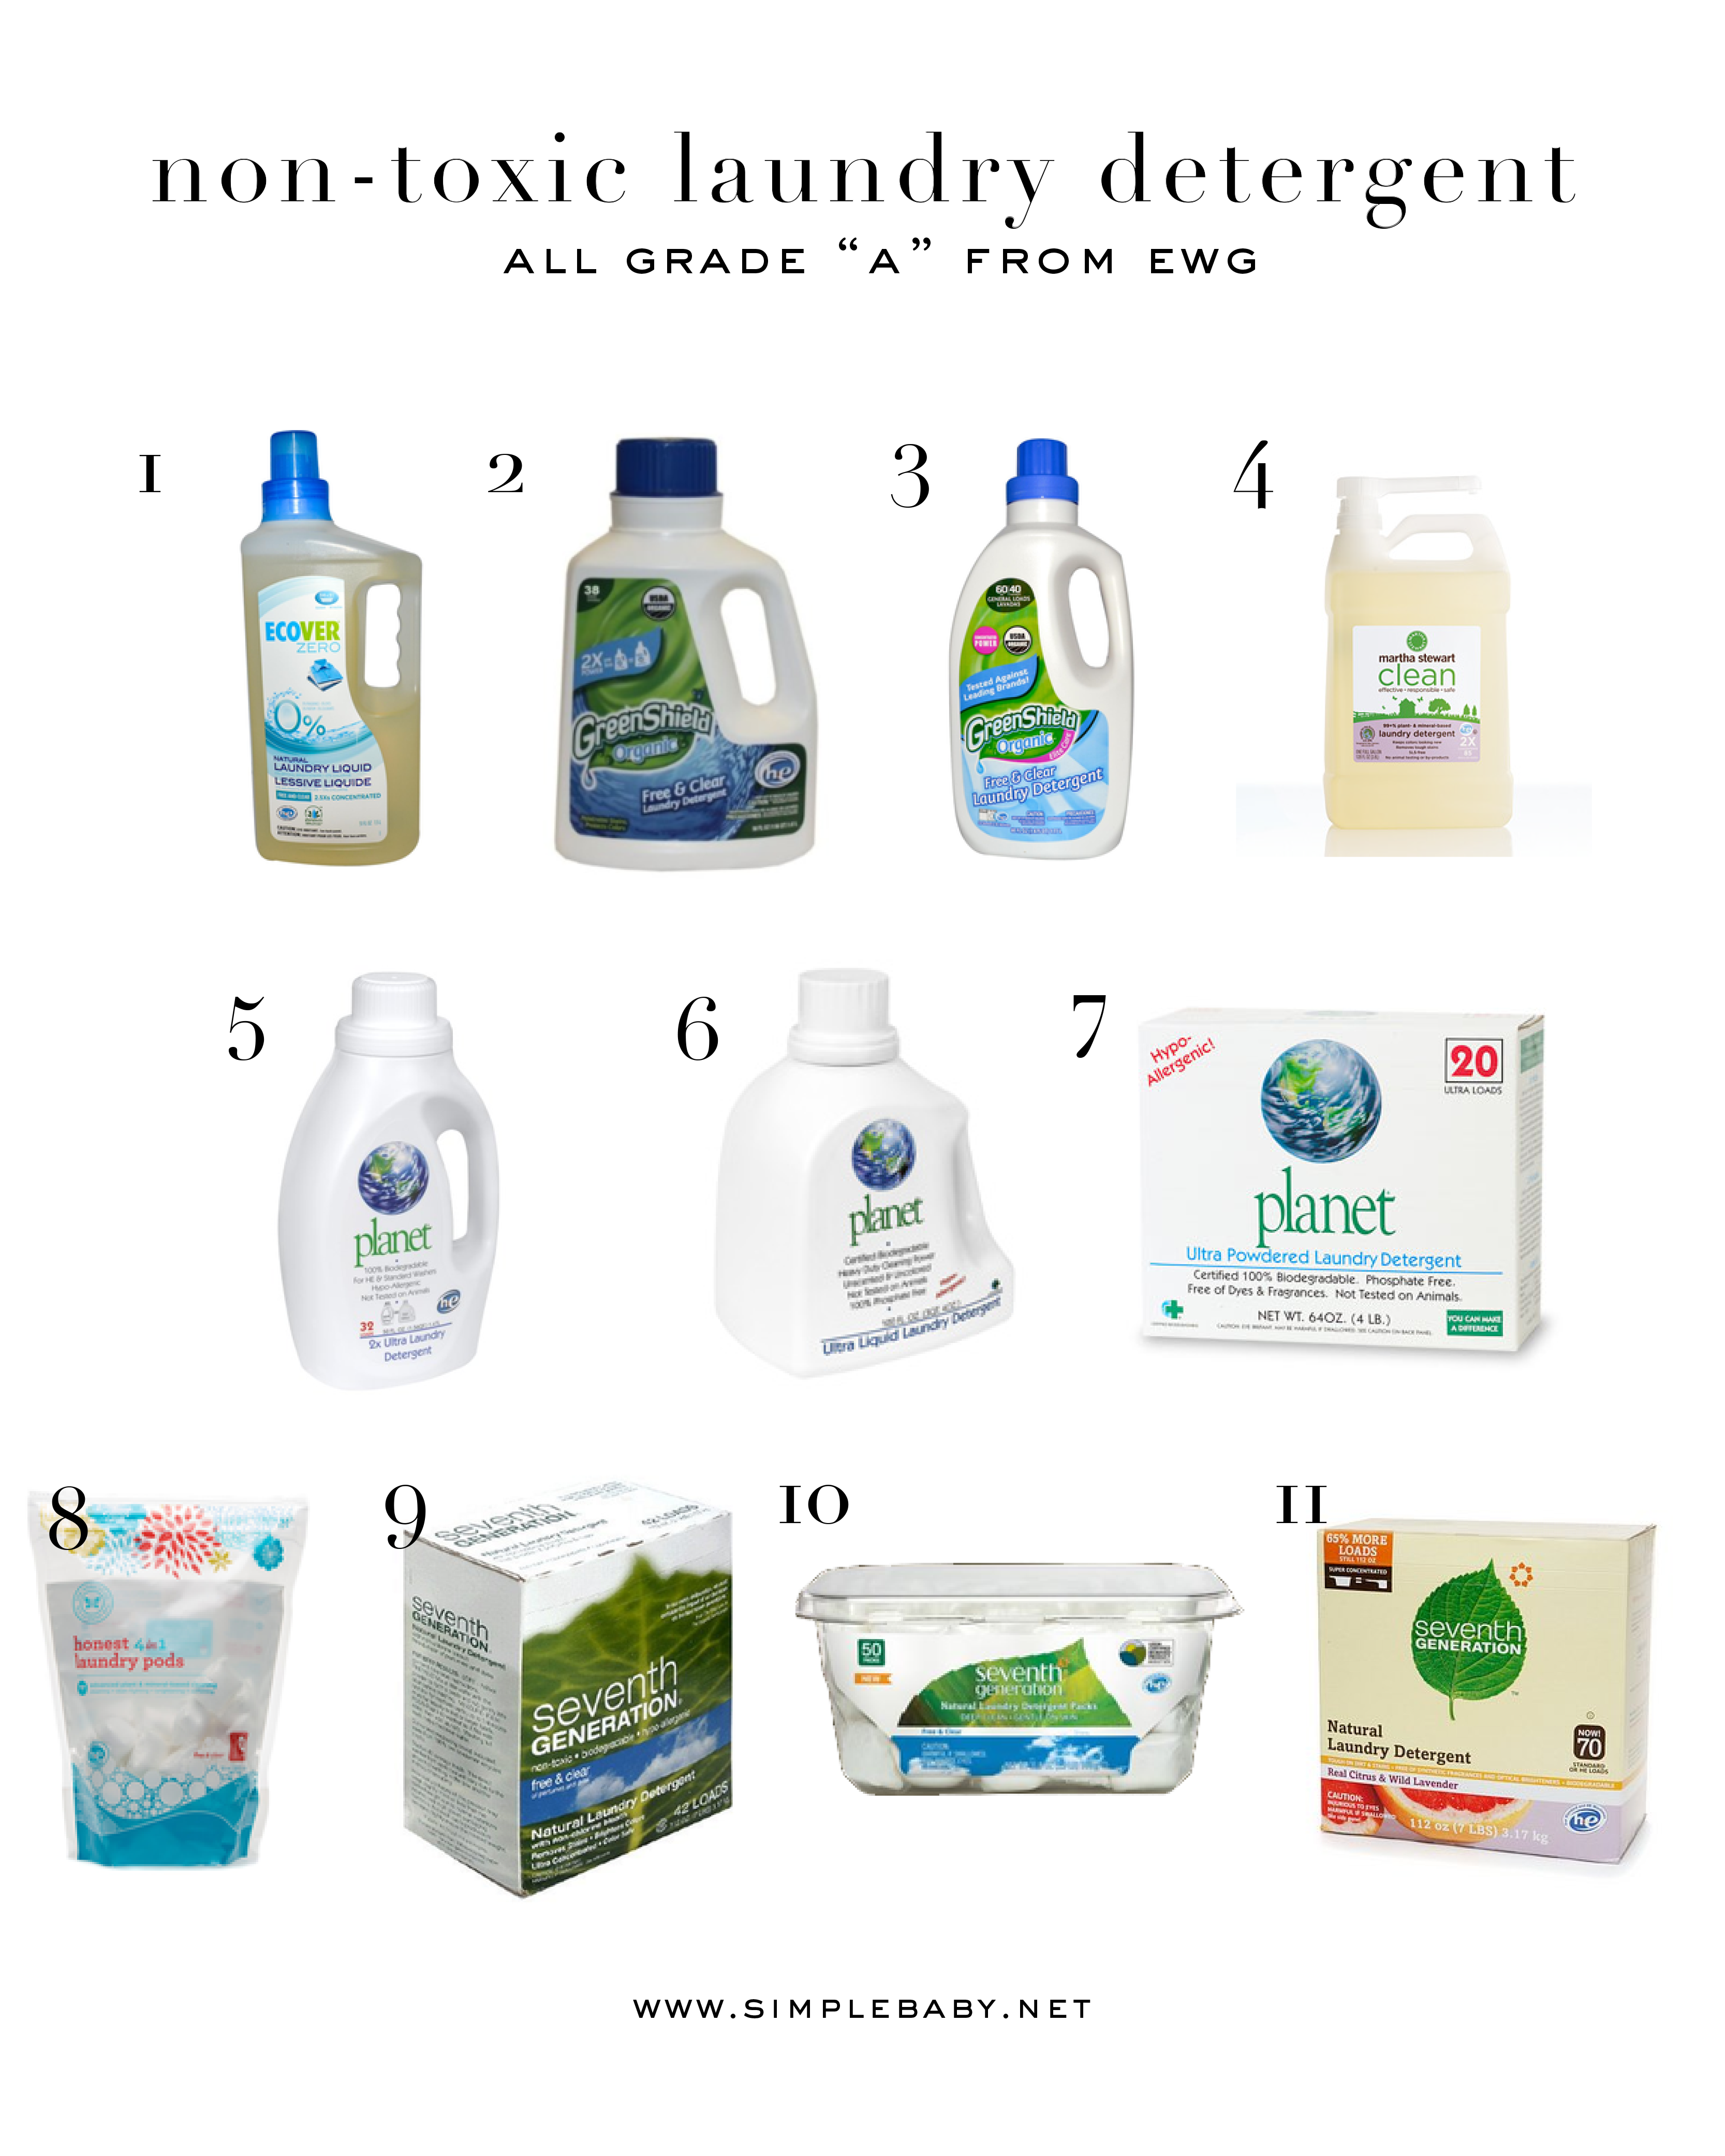 If You Are Looking To Reduce Toxins In Your Home Your Laundry Detergent Is A Great Effective And Really Easy Place To Start Most Babe Preparation Best